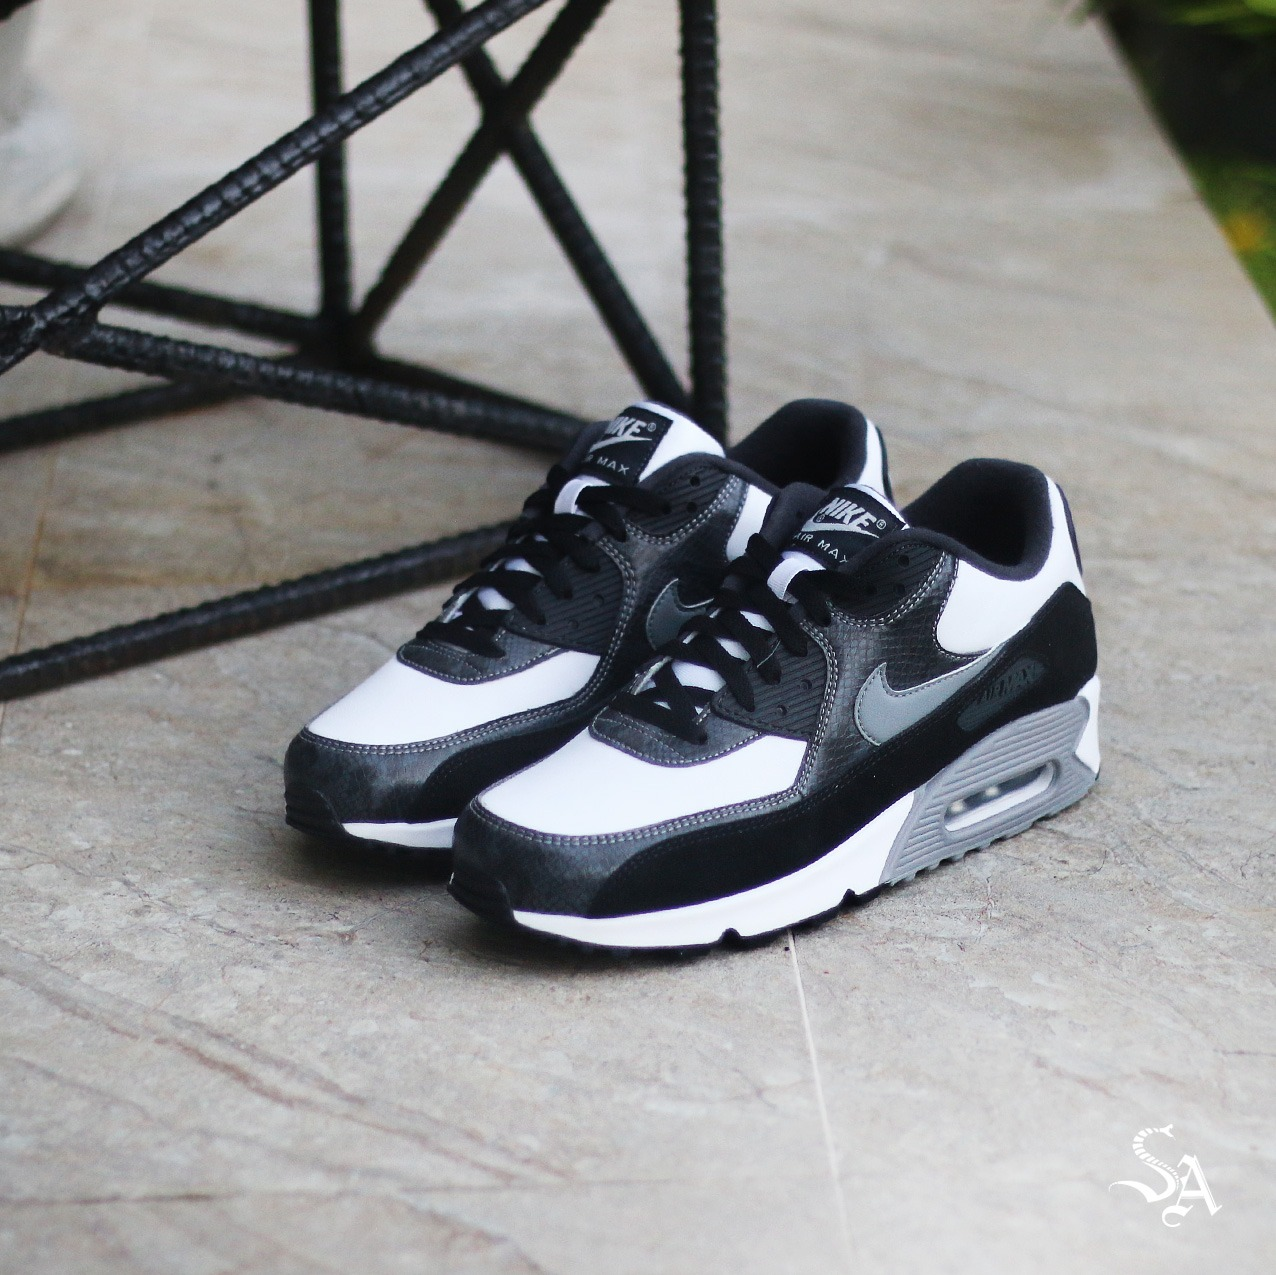 Tribute to an icon: Nike Air Max 90 | Campaign US